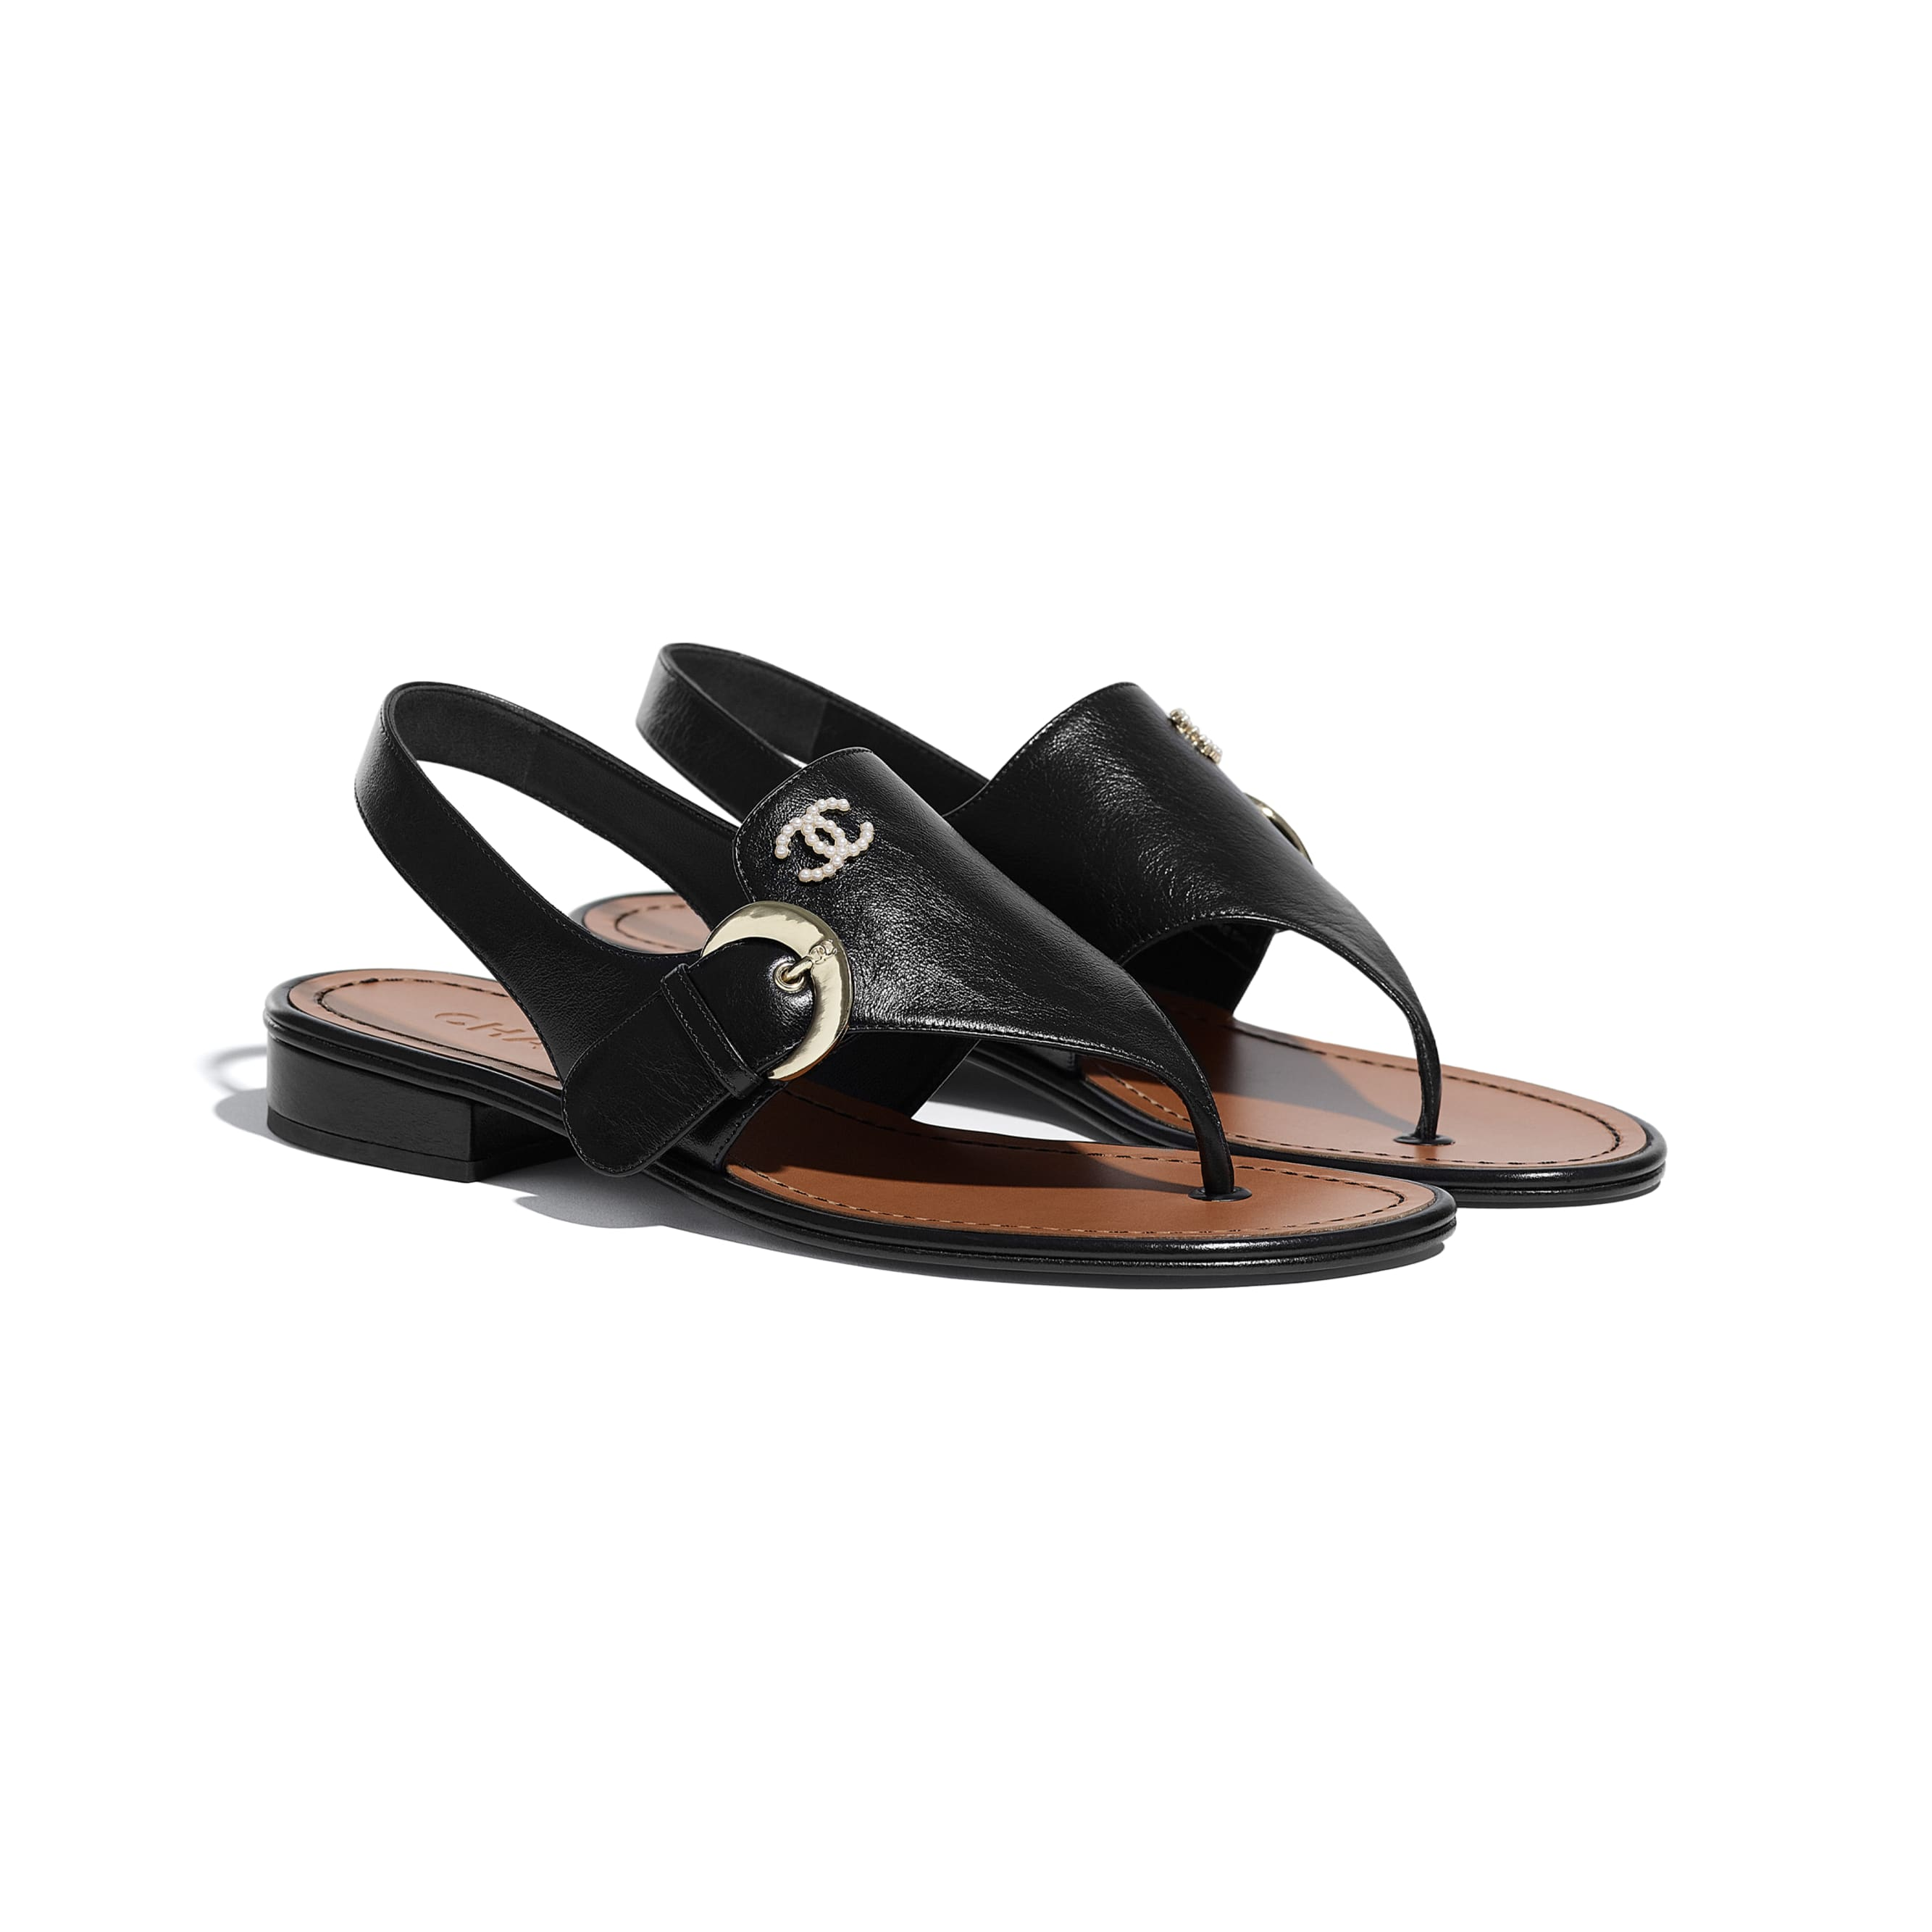 Sandals - Black - Calfskin - CHANEL - Alternative view - see standard sized version